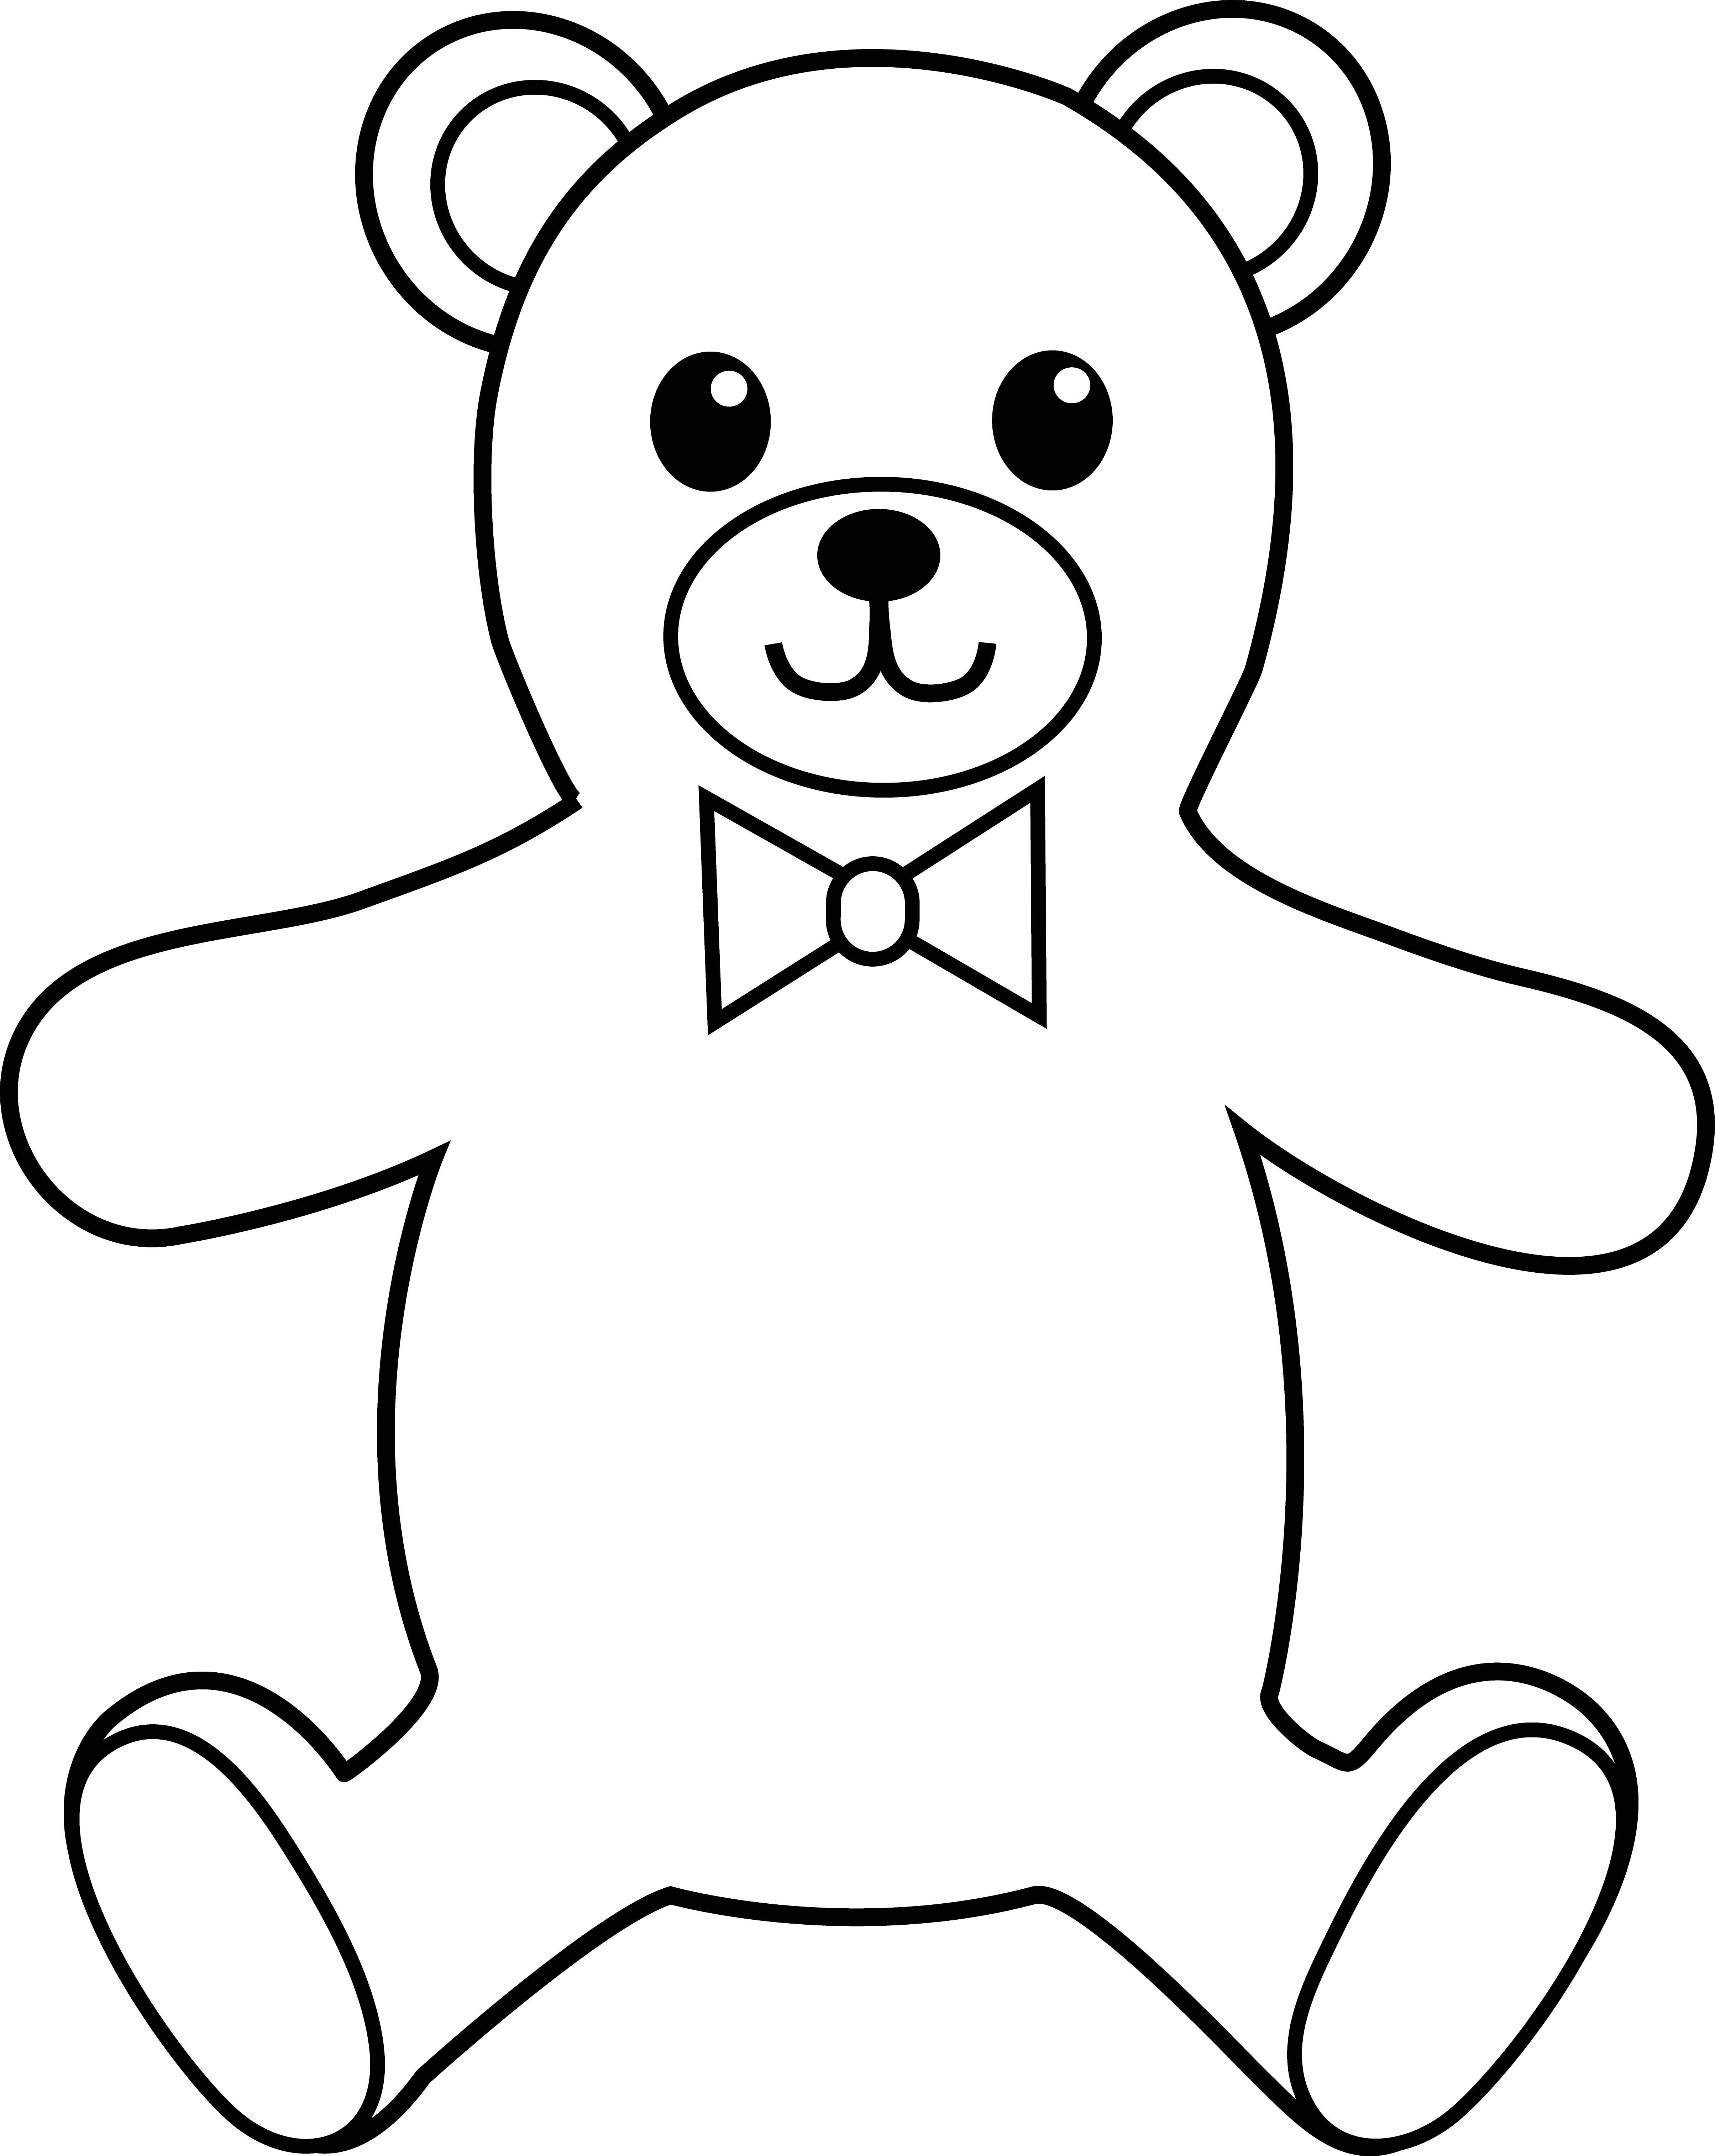 bear%20clipart%20black%20and%20white